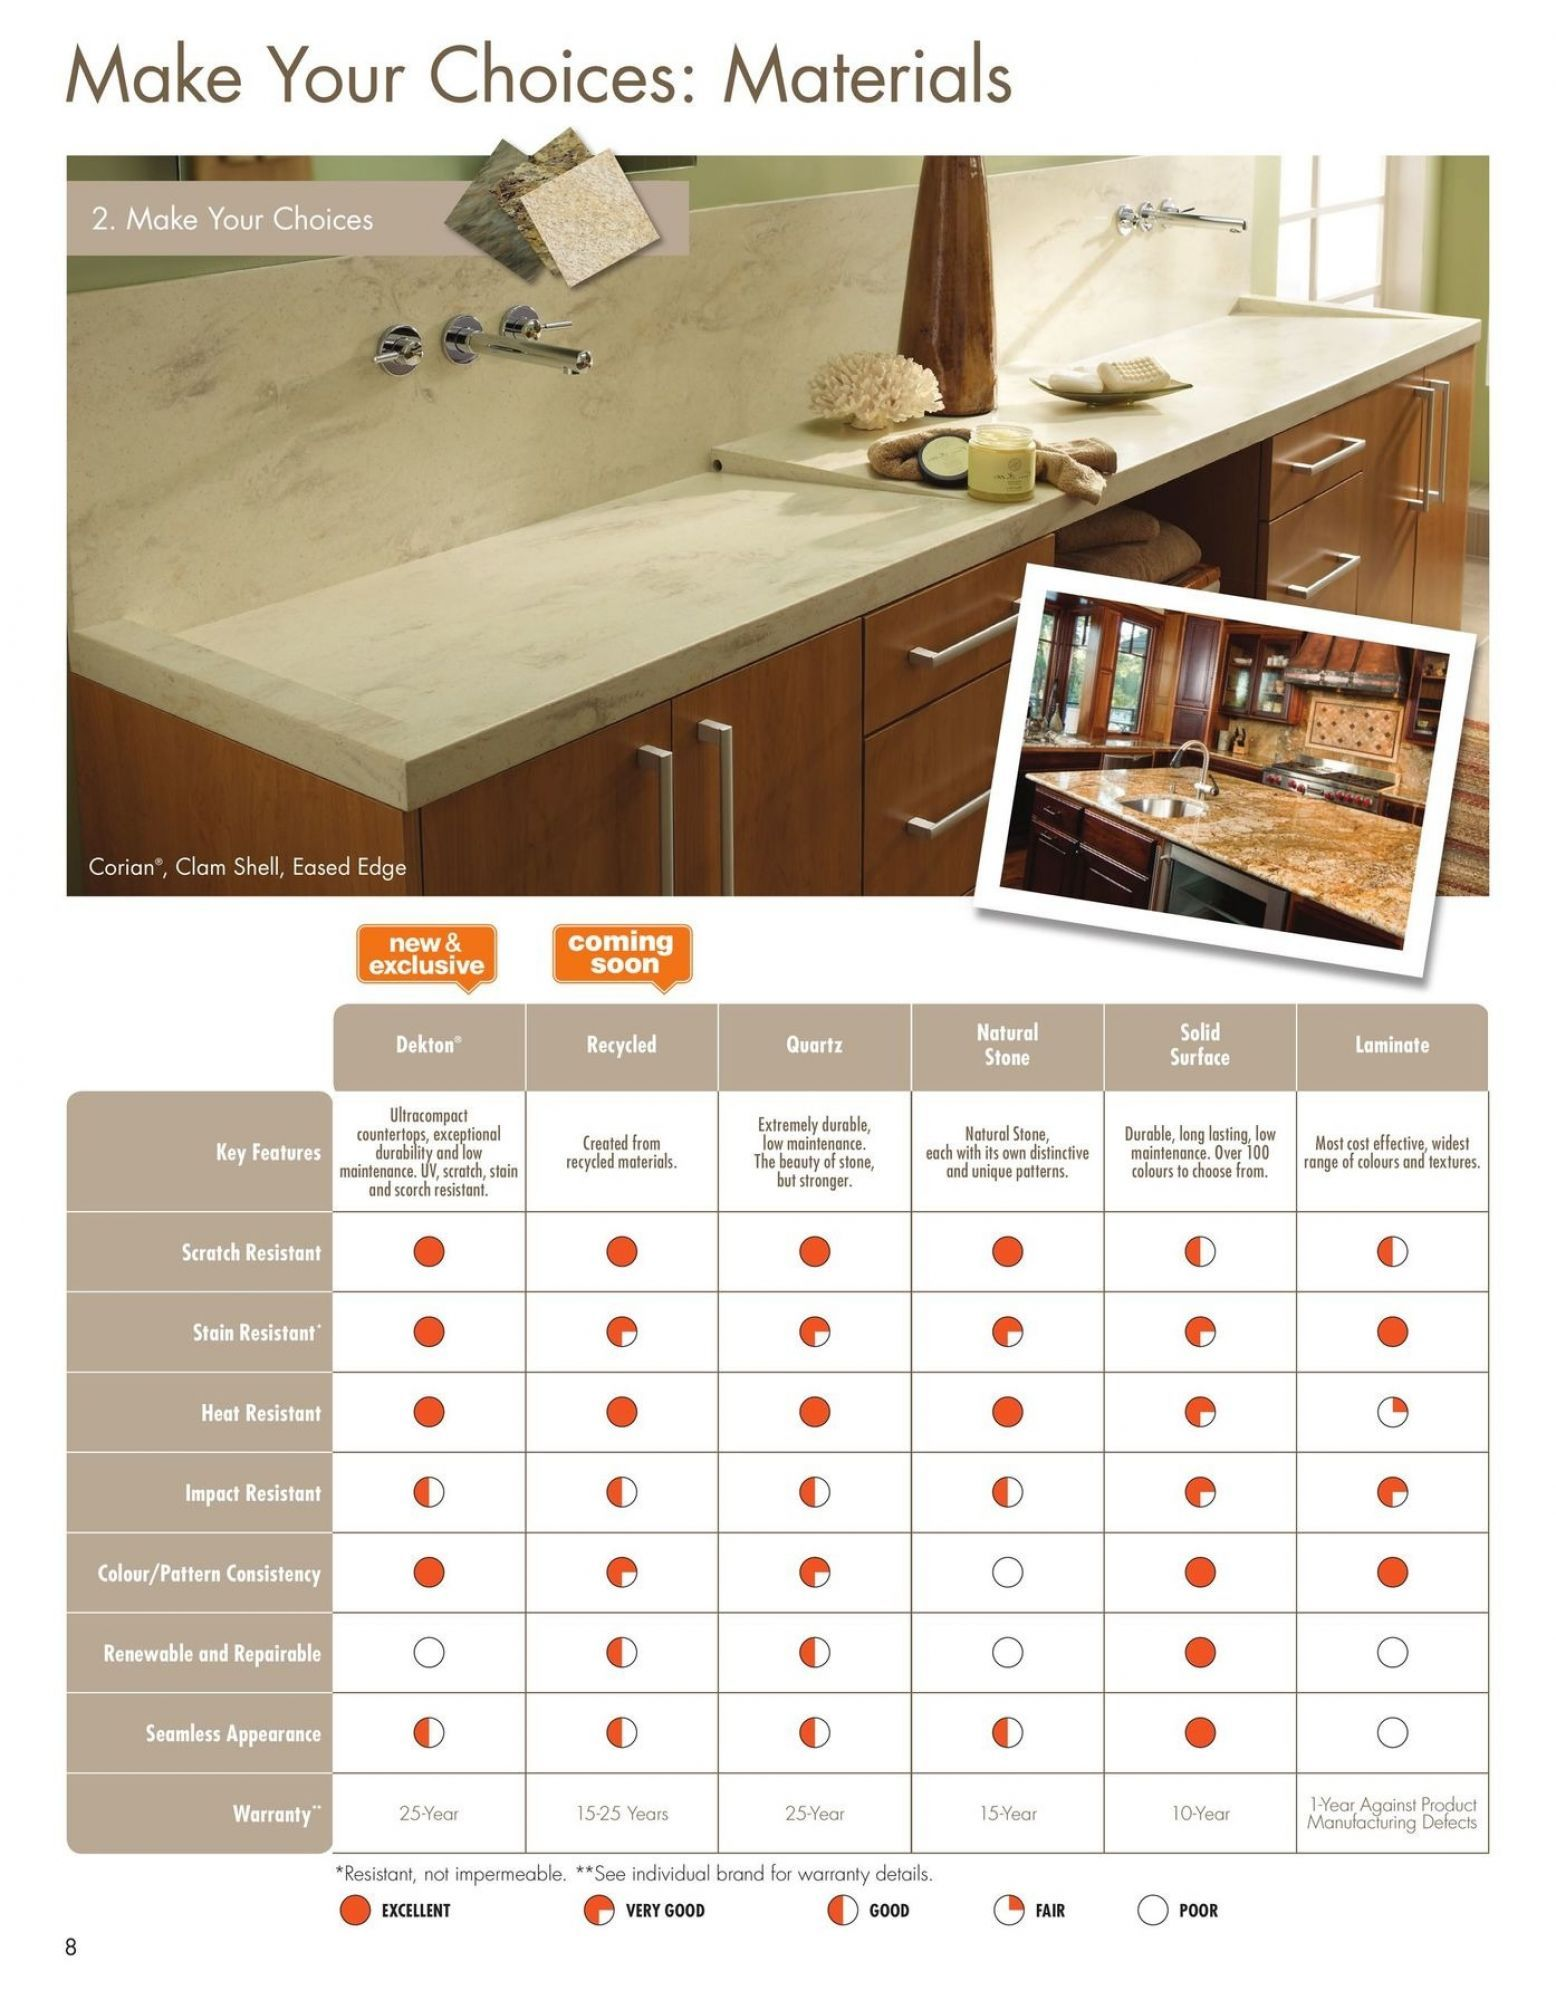 Flyer Home Depot Countertop Buying Guide Canada From Monday January 1 2018 To Monday December 31 2018 Home Depot Home Depot Store Flyer